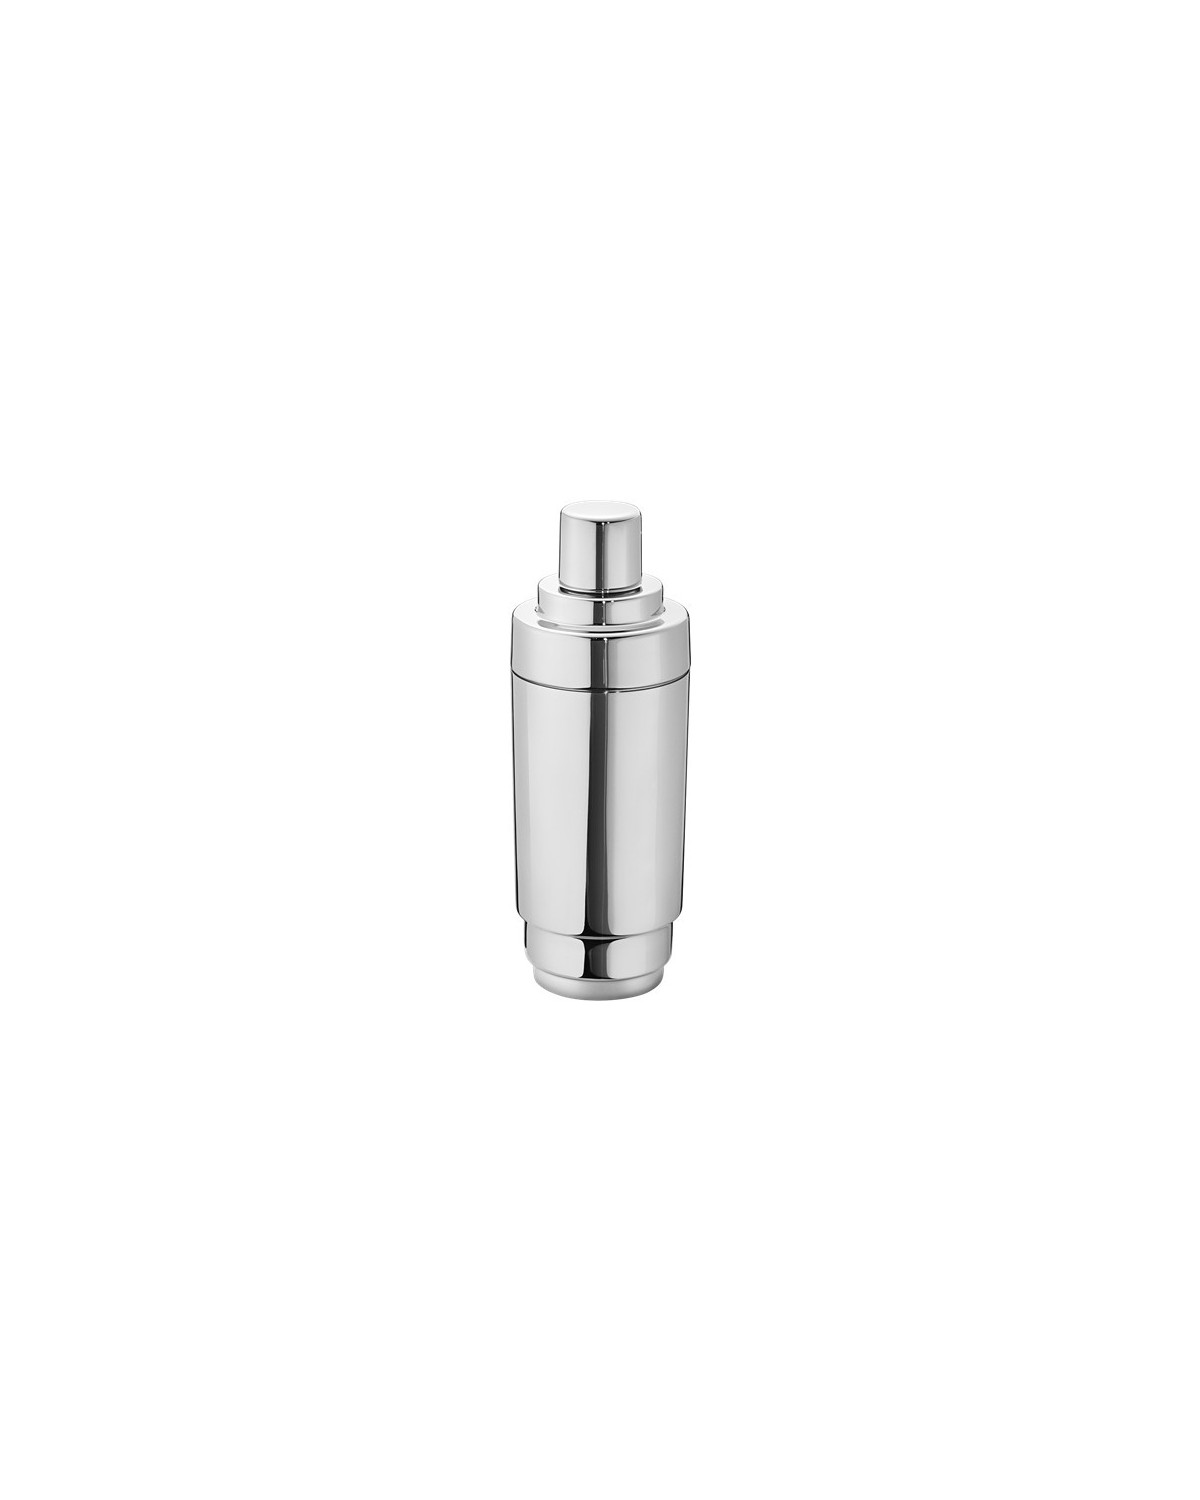 Georg Jensen Manhattan shaker